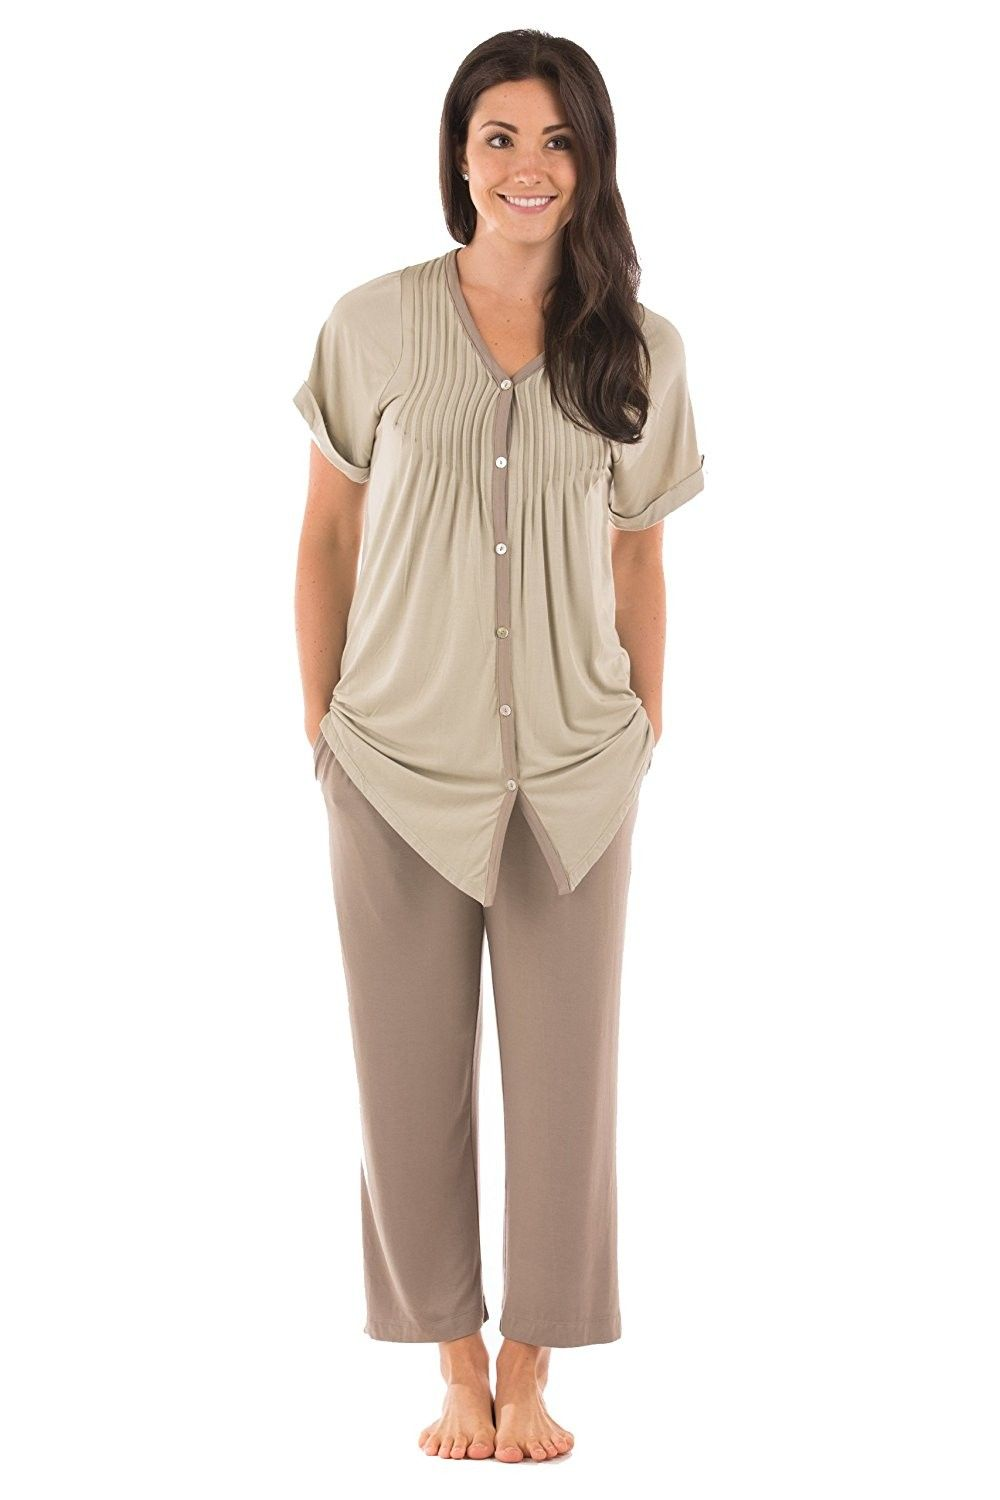 363a5b709dd9 Texere Women s Pajama Set Sleepwear - Luxury Nightwear for Her WB9992 -  Sand - C1187I8XNRN